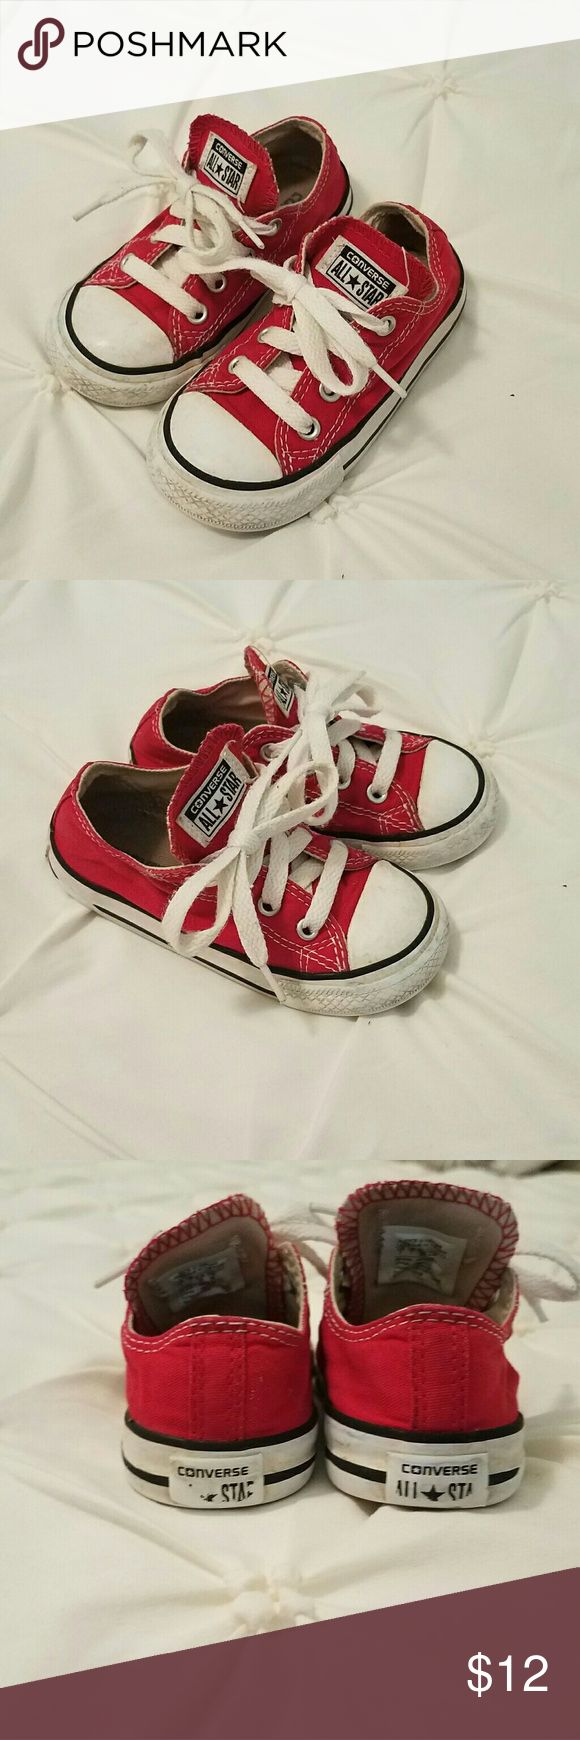 Converse Chuck Taylor Red Converse All Star  Red  Size 7  Boys Girls Toddler  Good condition, normal wear Converse Shoes Sneakers